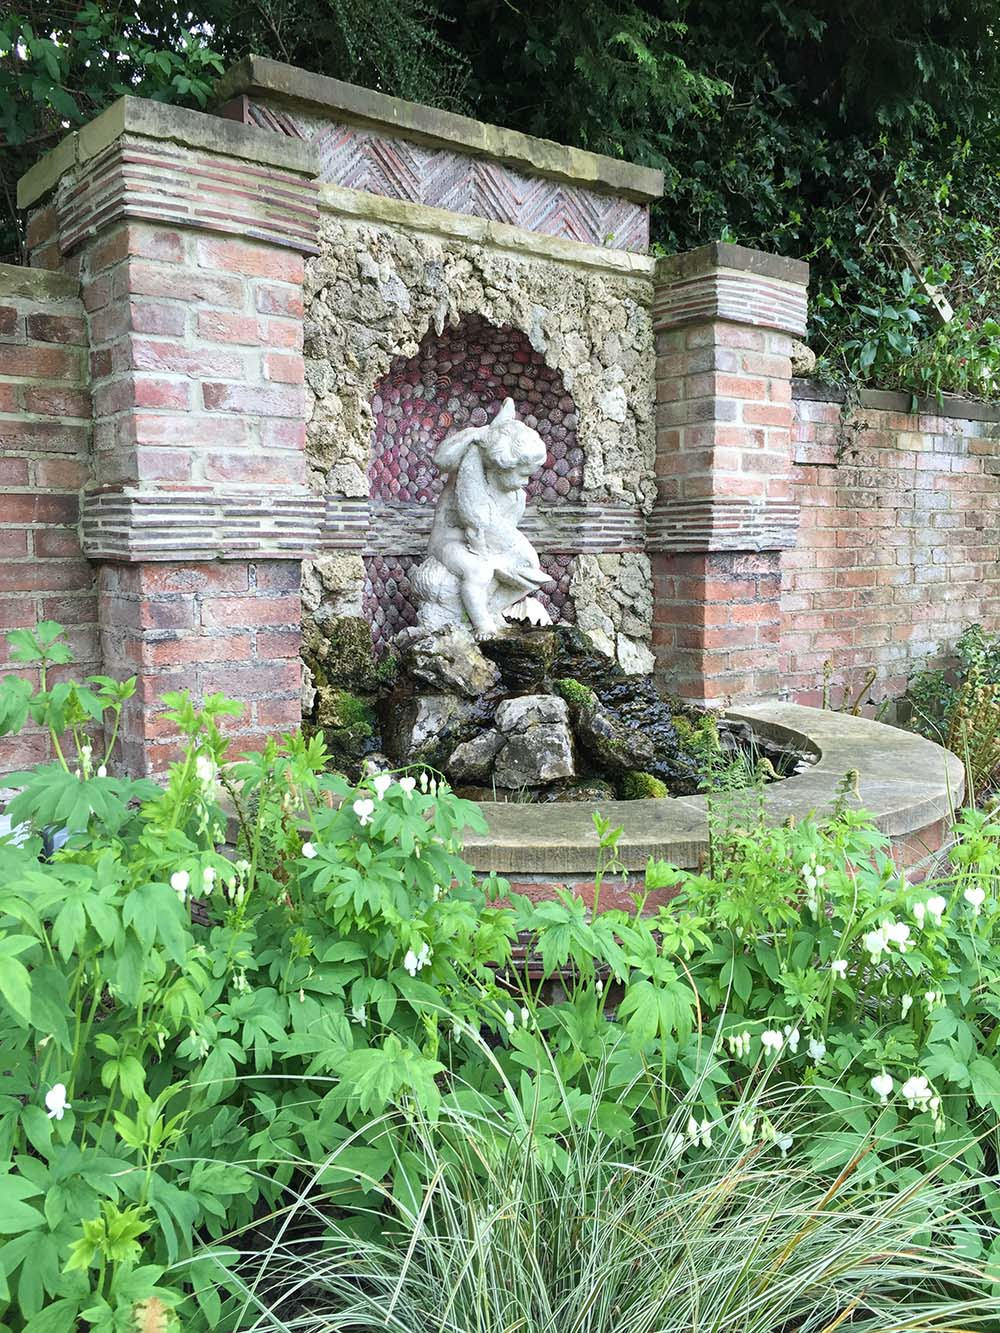 Grotto. Queen scallop shell work by Olicana Mosaics. Plants for shade/ and foliage: Ferns in variety, Dicentra alba, Brunnera Jack Frost.